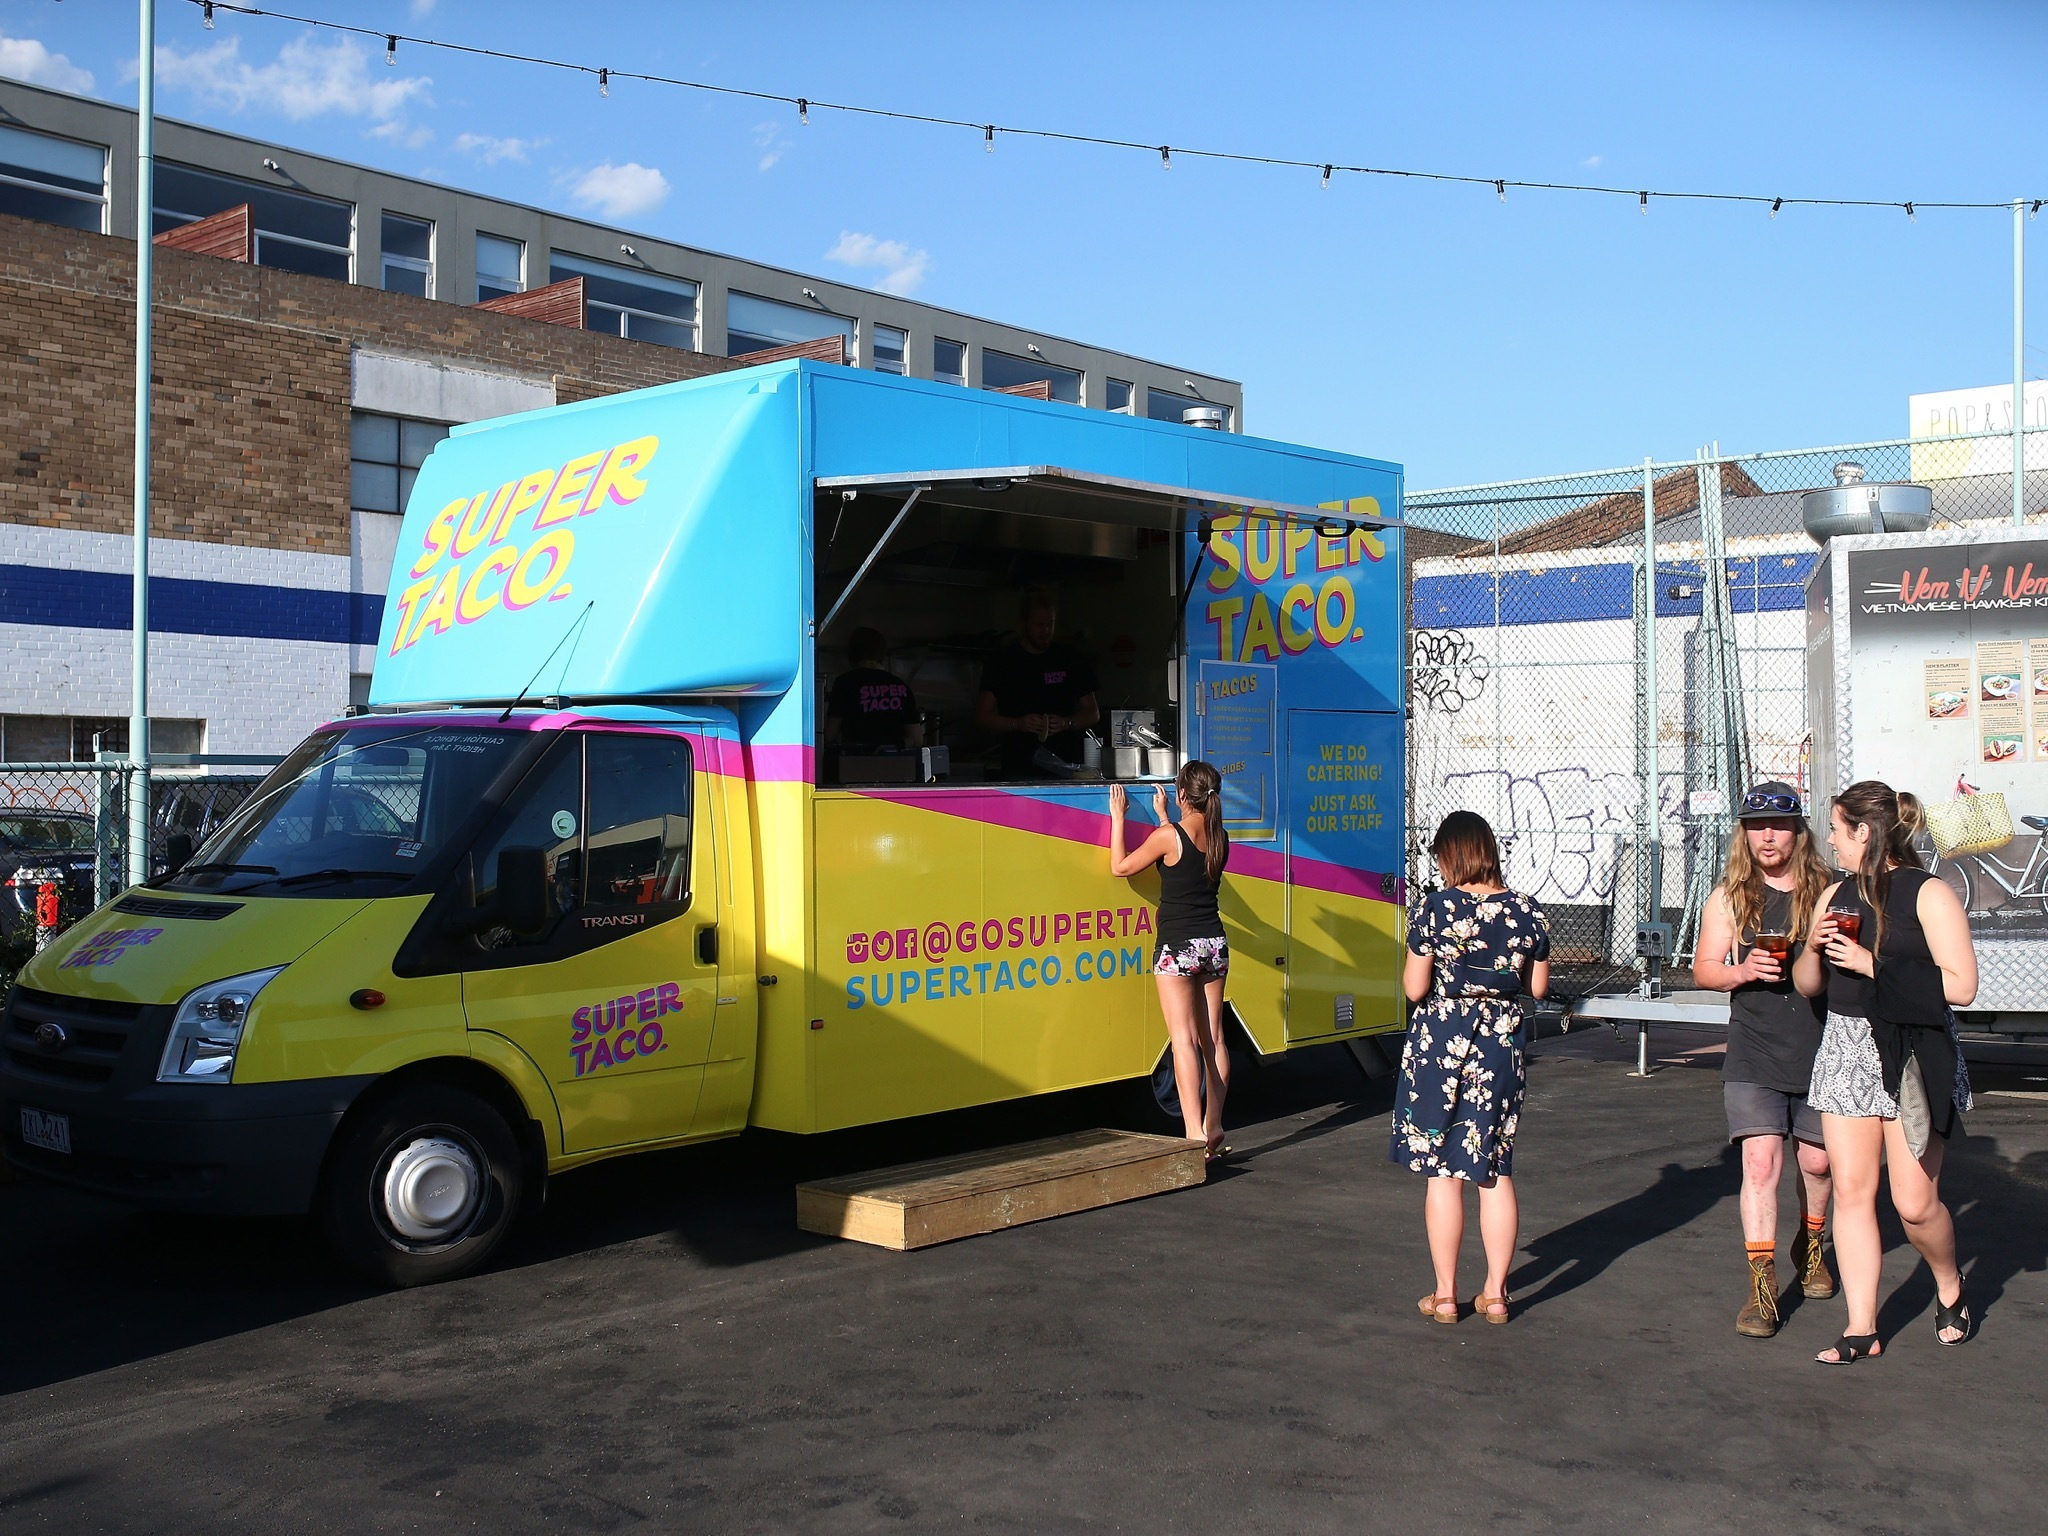 A shot of the Super Taco food van parked at Welcome to Thornbury